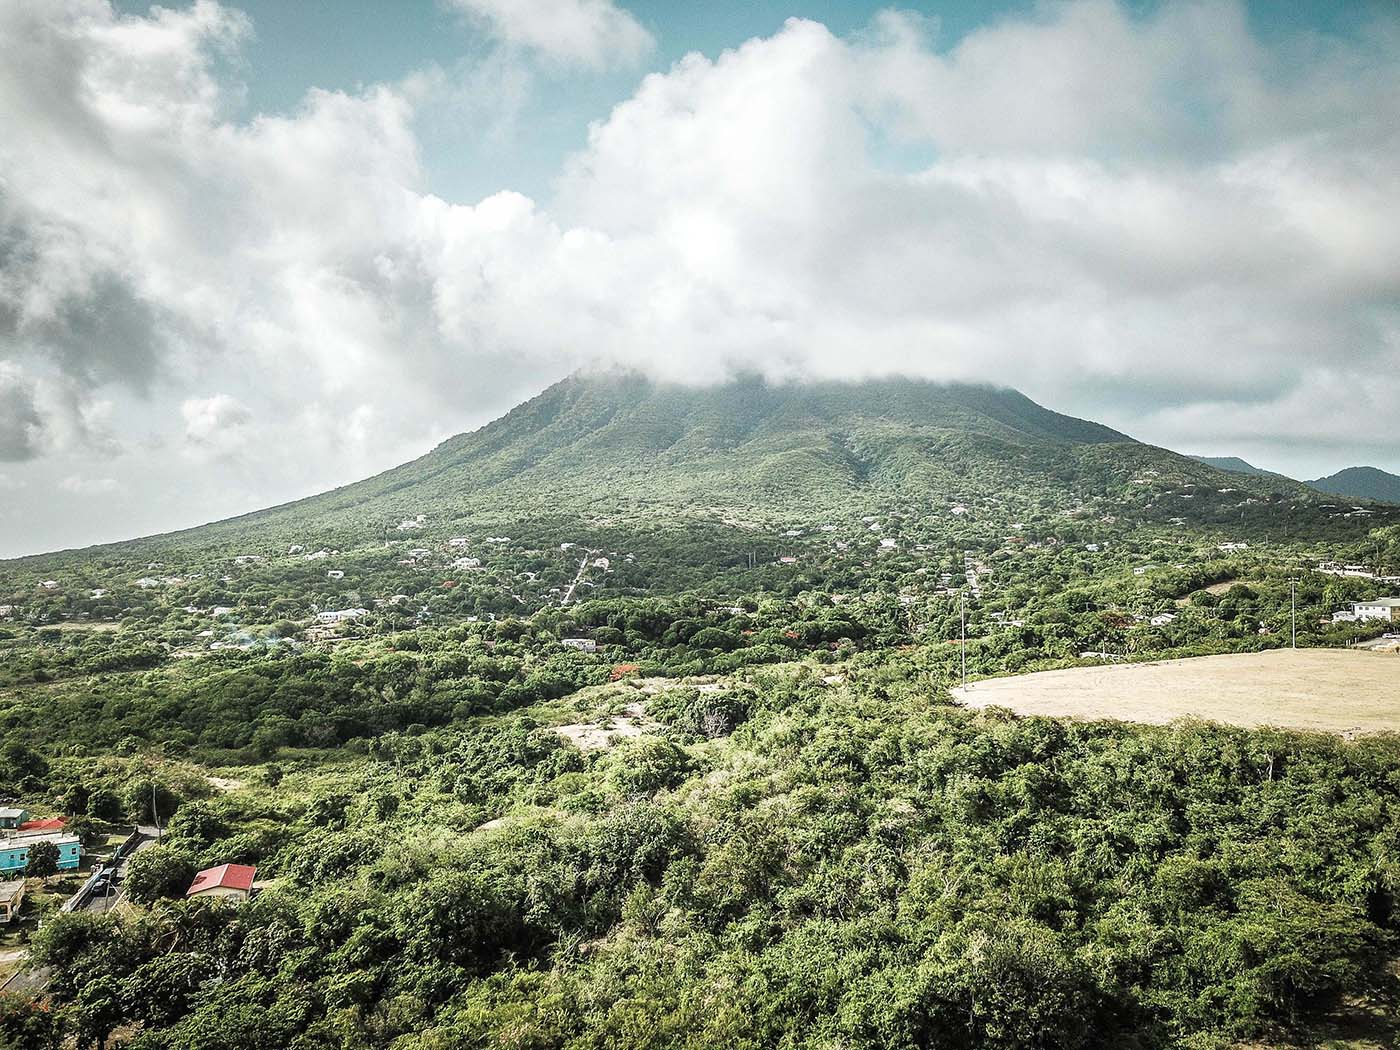 Soak up the hot sun in Nevis, the Caribbean, an usual holiday destination. PC: Julianna barnaby